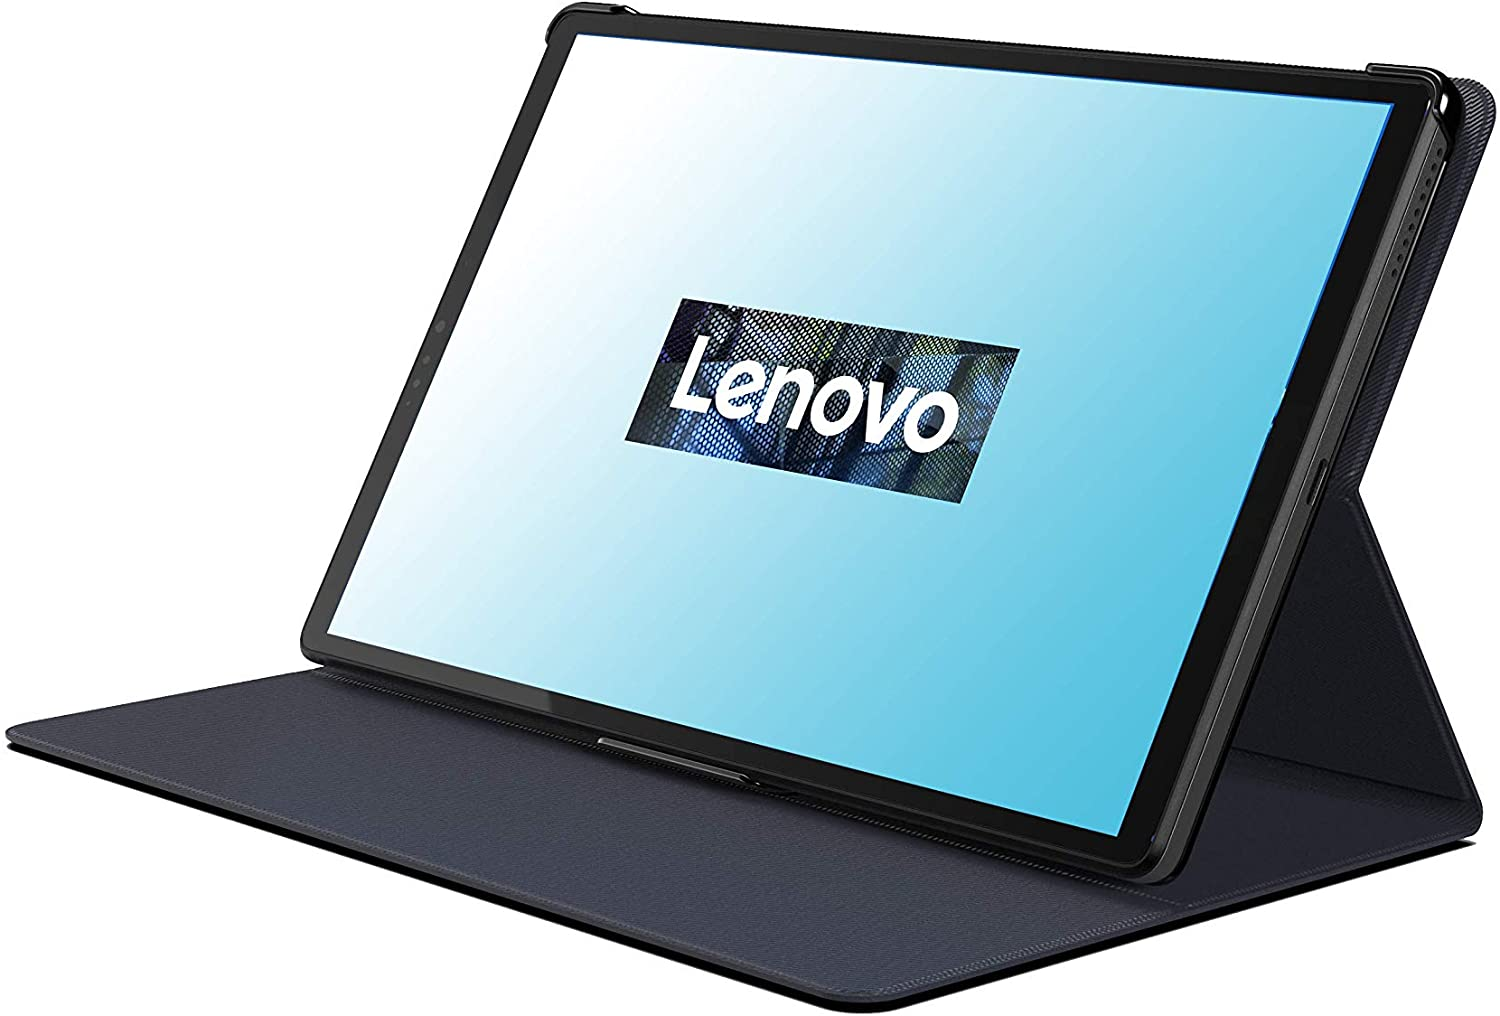 20200329.LENOVO-M10-PLUS-LAUNCHED-IN-CHINA-WITH-10.3-INCH-SCREEN-AND-HELIO-P22T-SOC-02.jpg